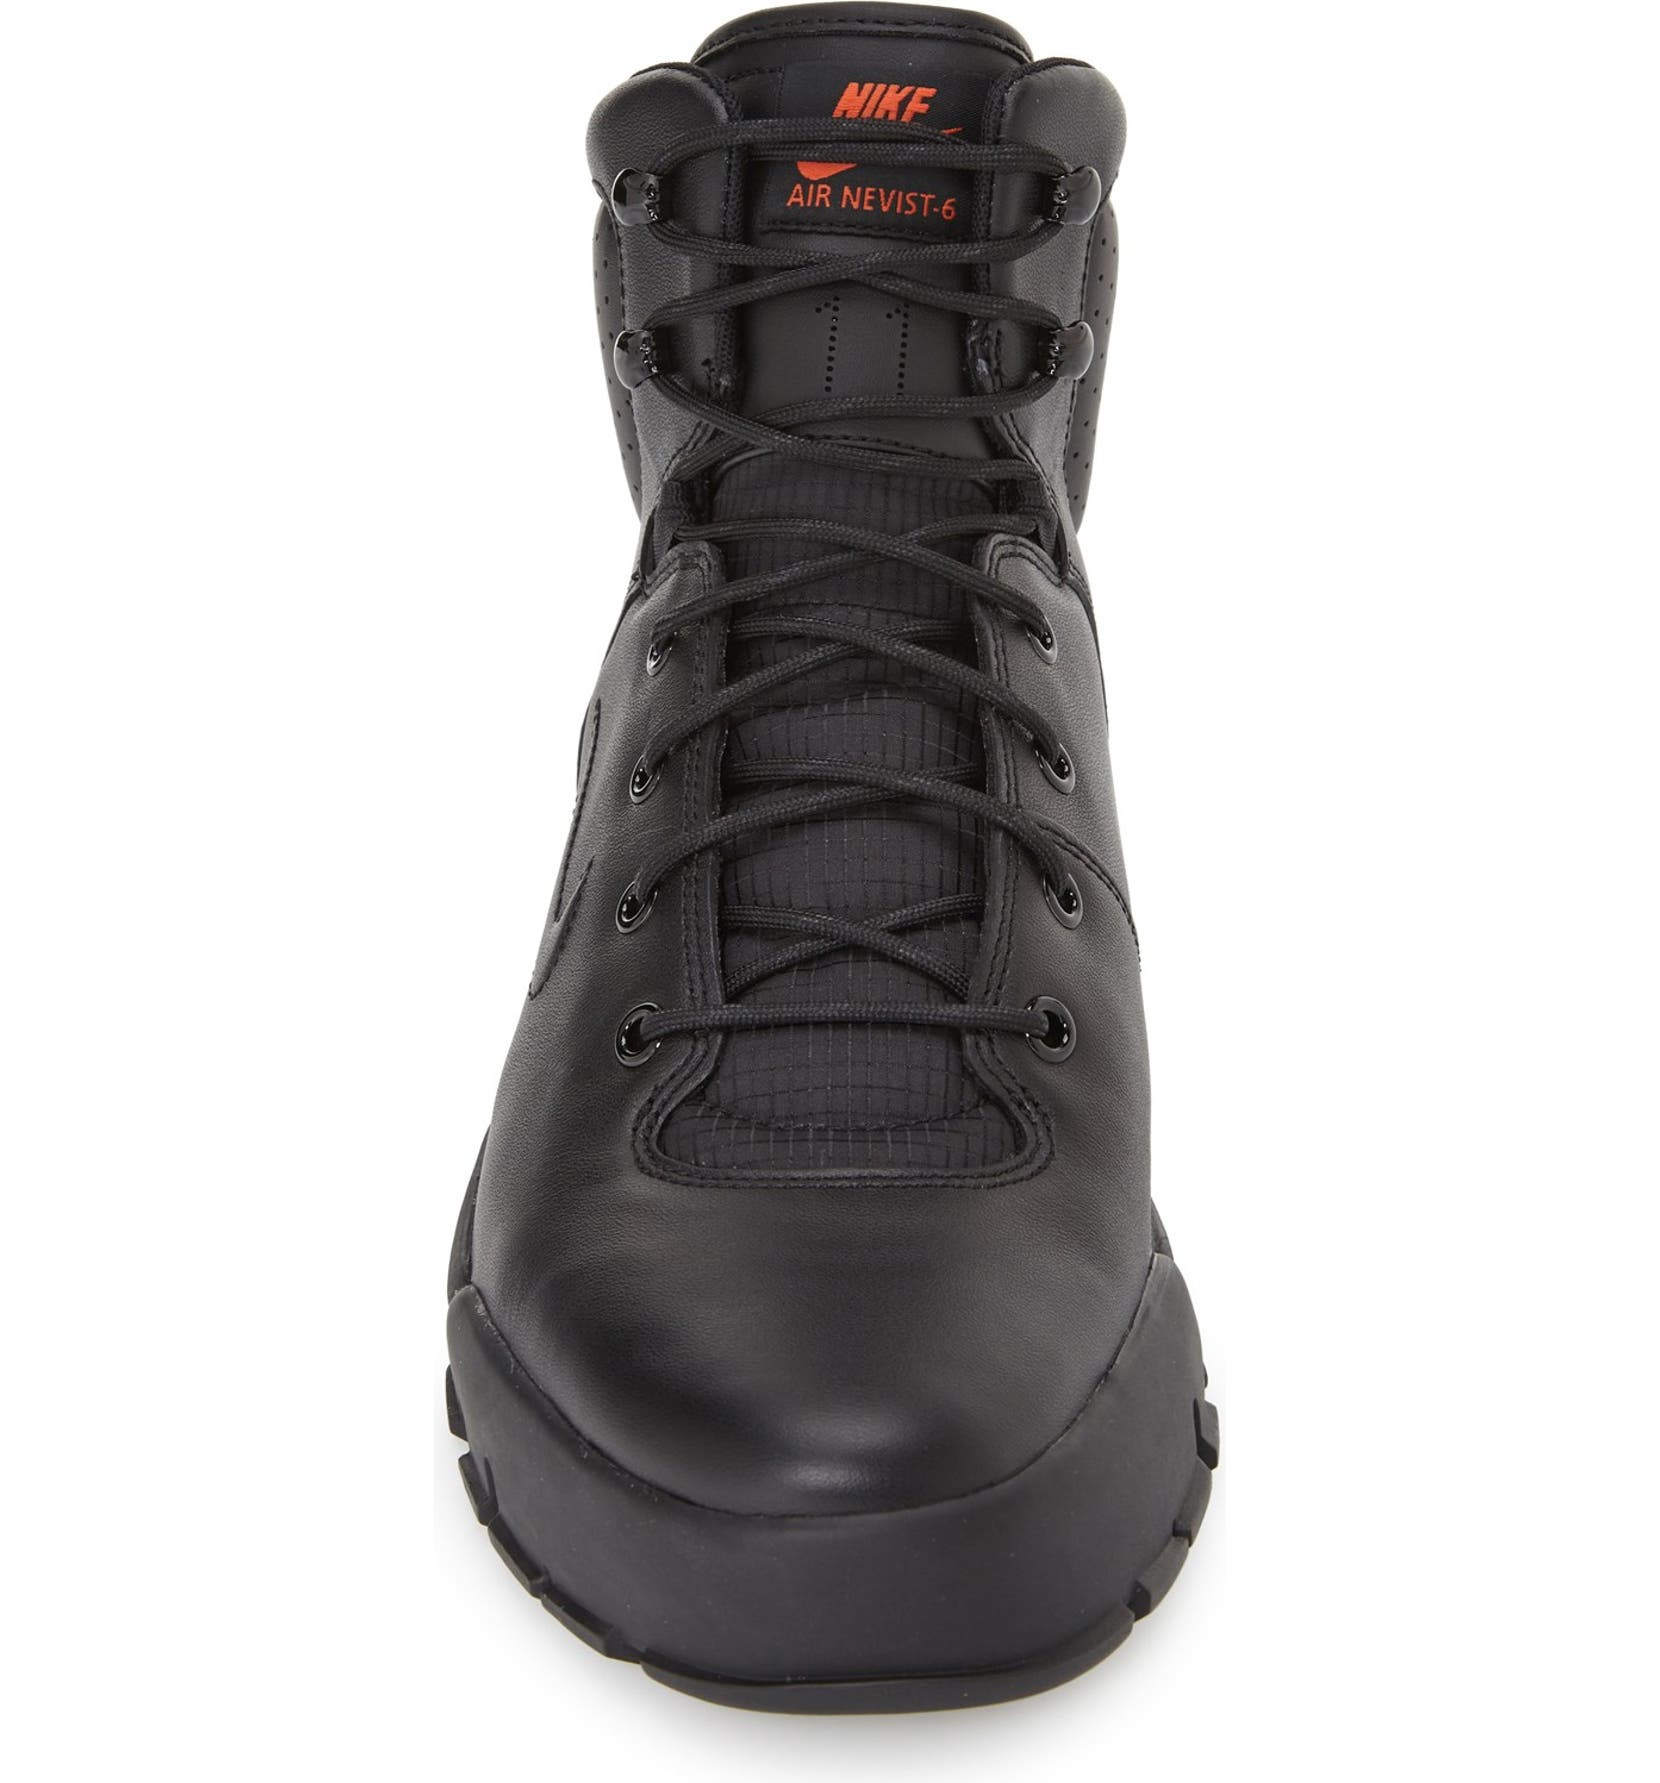 newest 18a92 8577a Nike  Air Nevist 6 ACG  Water Resistant Boot (Men)   Nordstrom